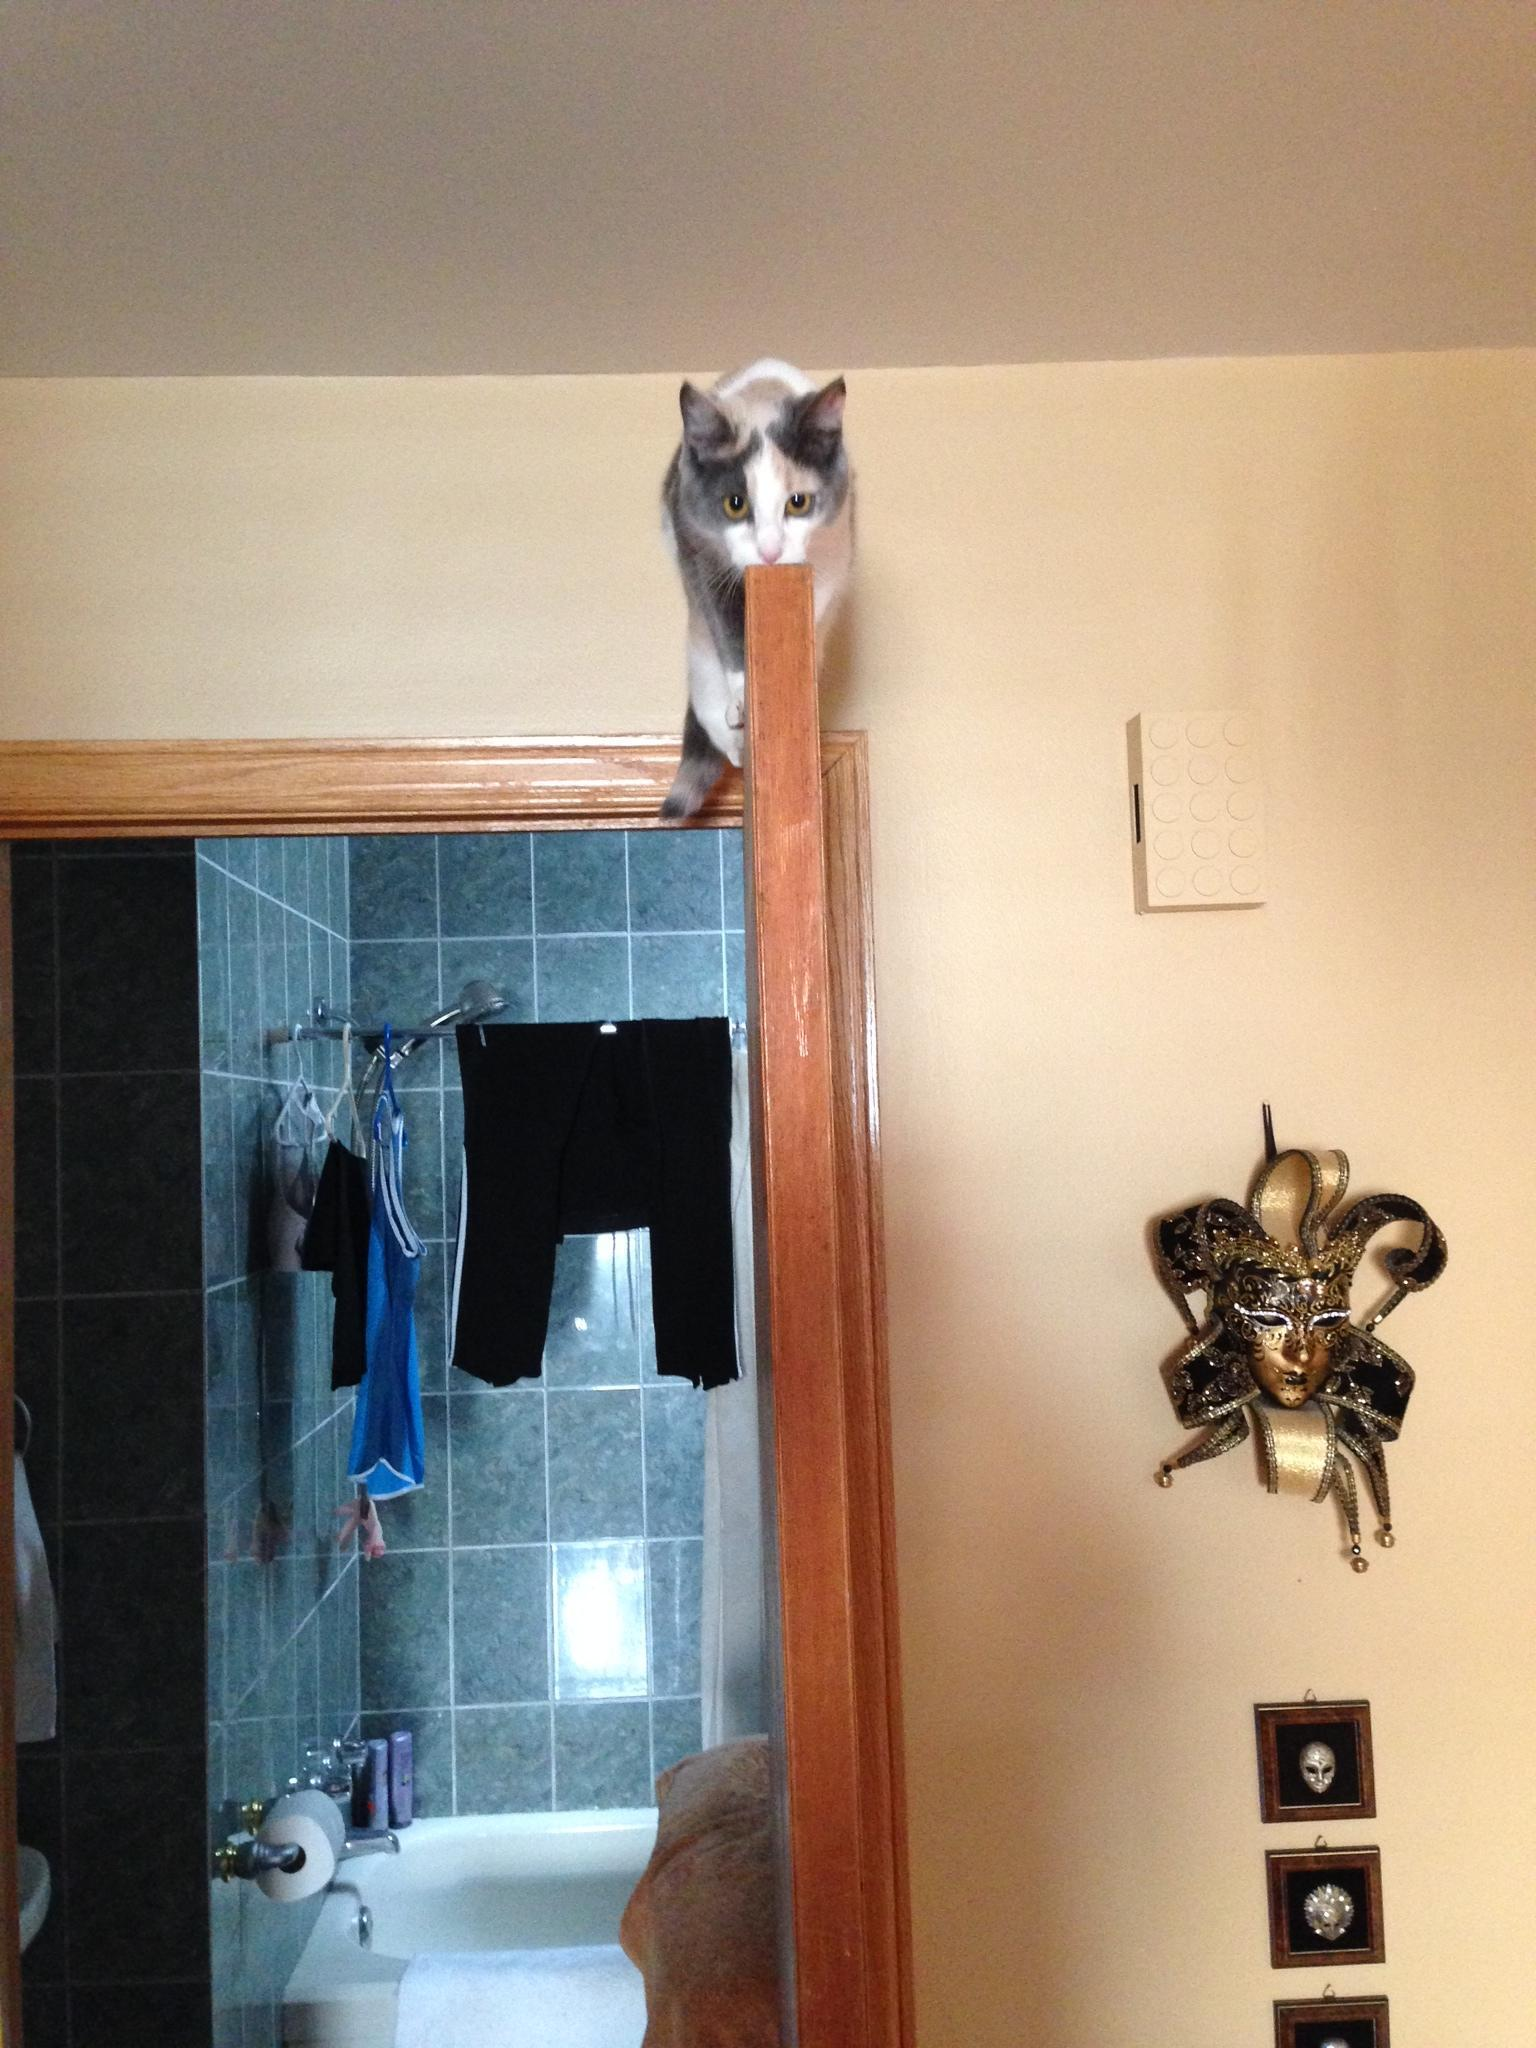 Ever get The Look from your cat? http://t.co/k1UUNwaFFB